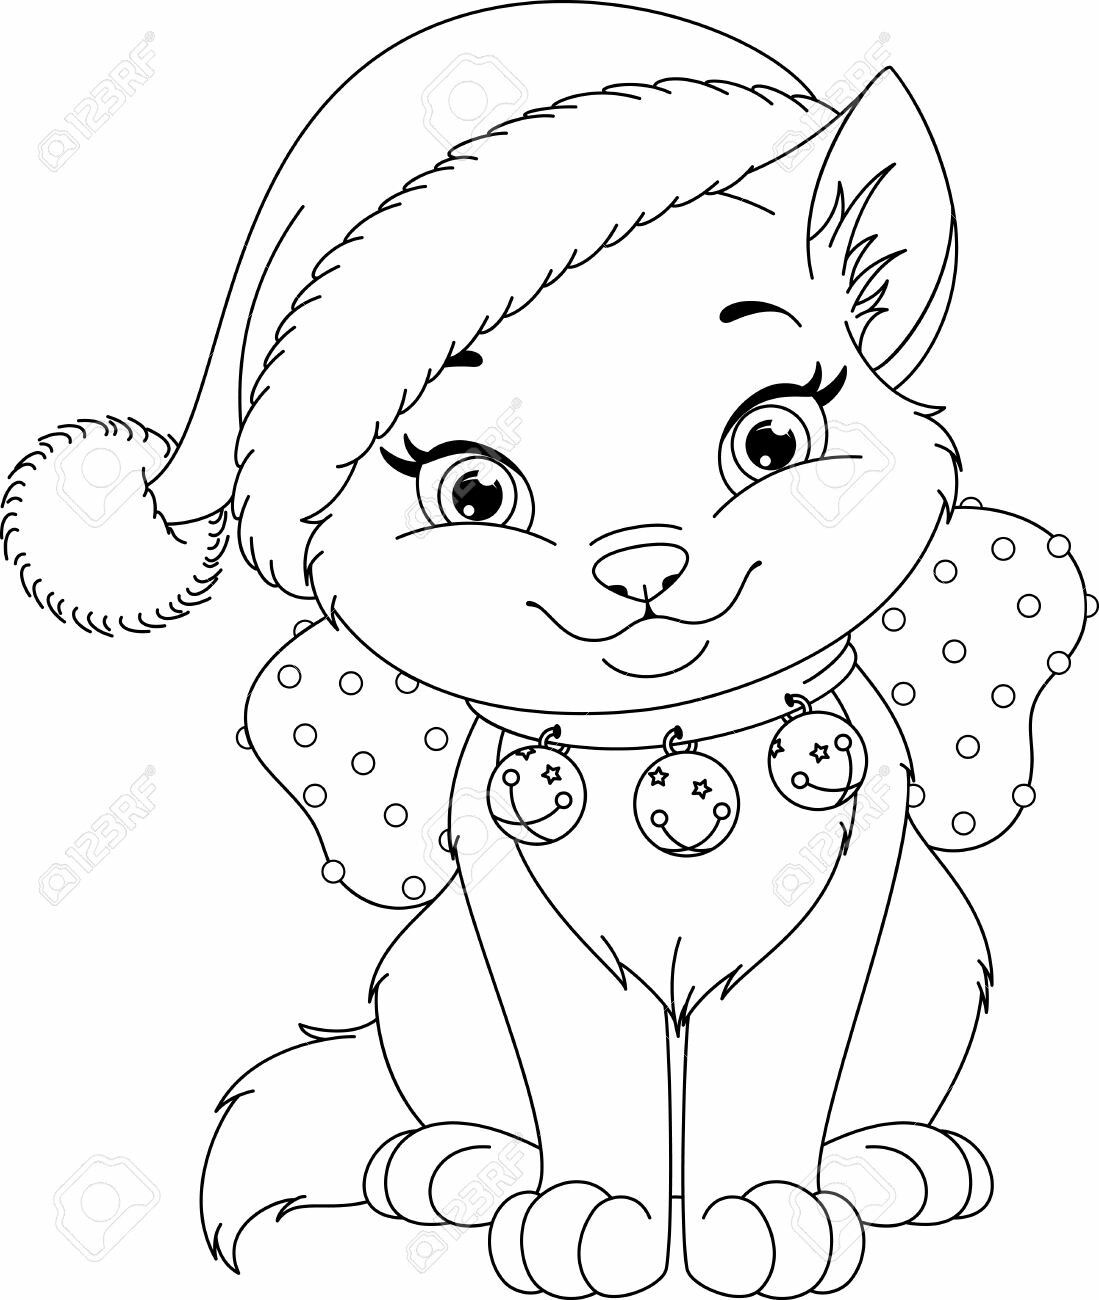 Pin By Yvonne Karlsson On Kid Crafts Cat Coloring Book Printable Christmas Coloring Pages Christmas Present Coloring Pages